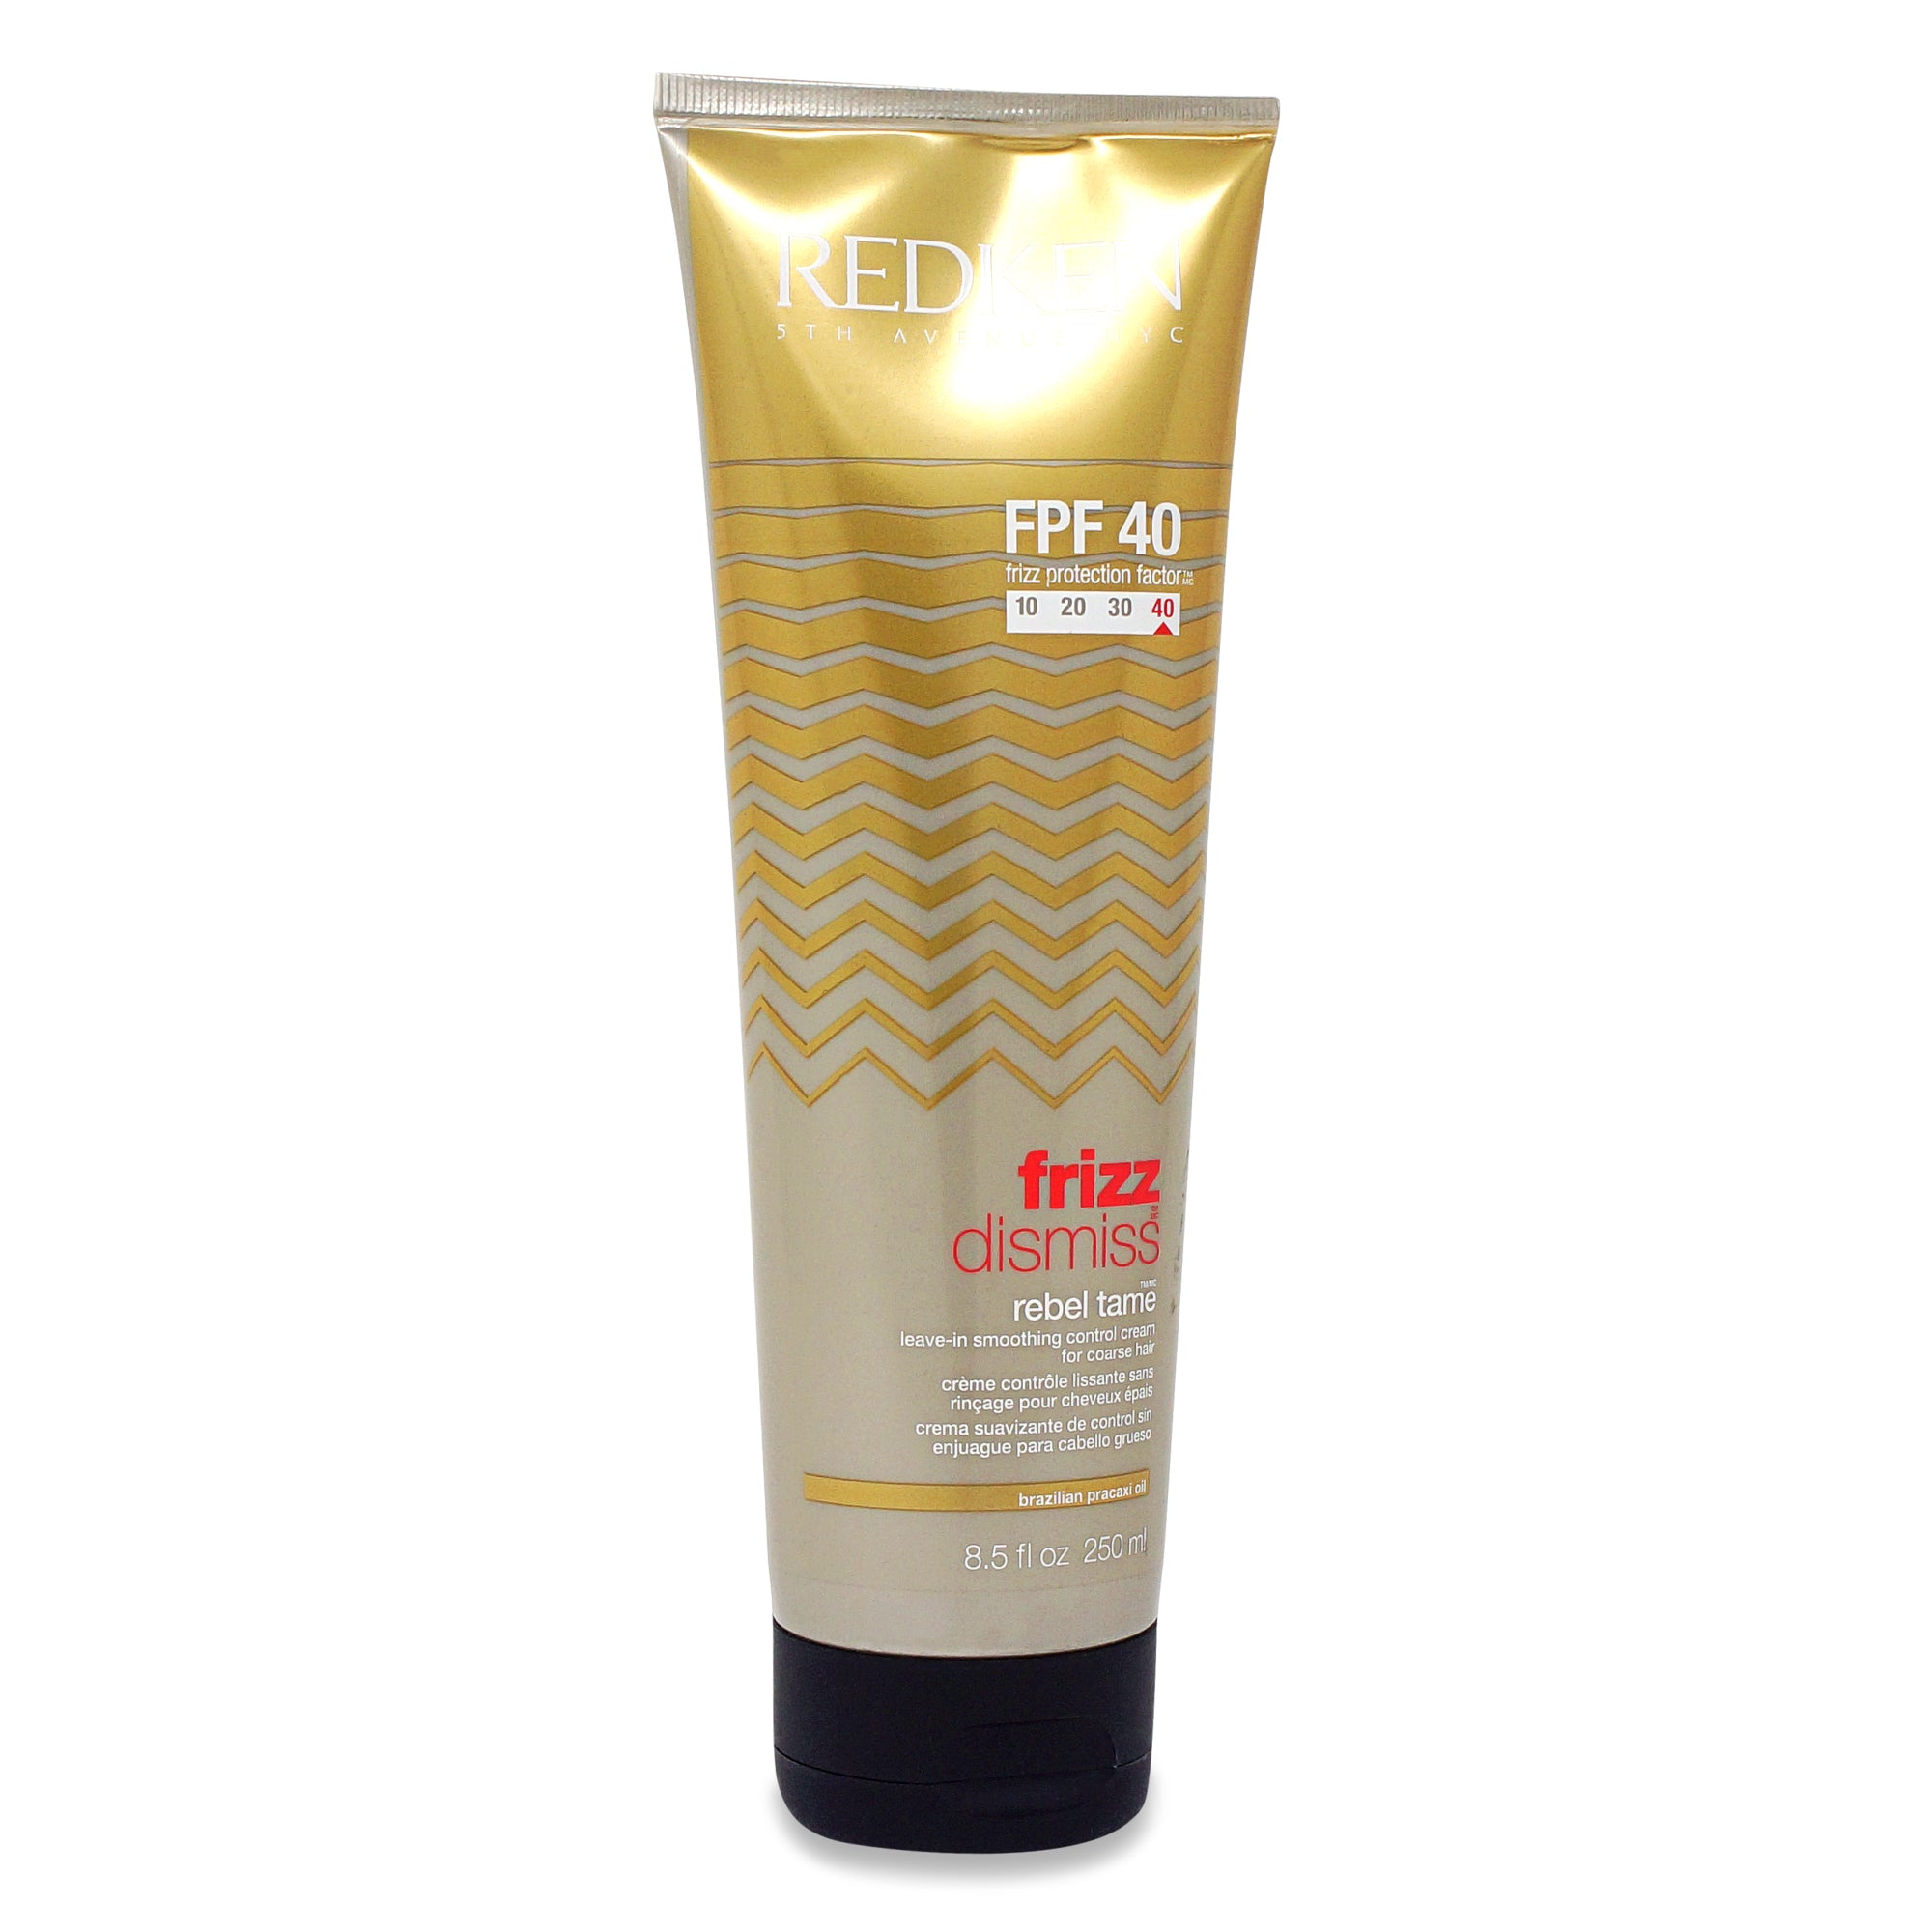 REDKEN ~ FRIZZ DISMISS REBEL TAME FPF 40~ 8.5 OZ